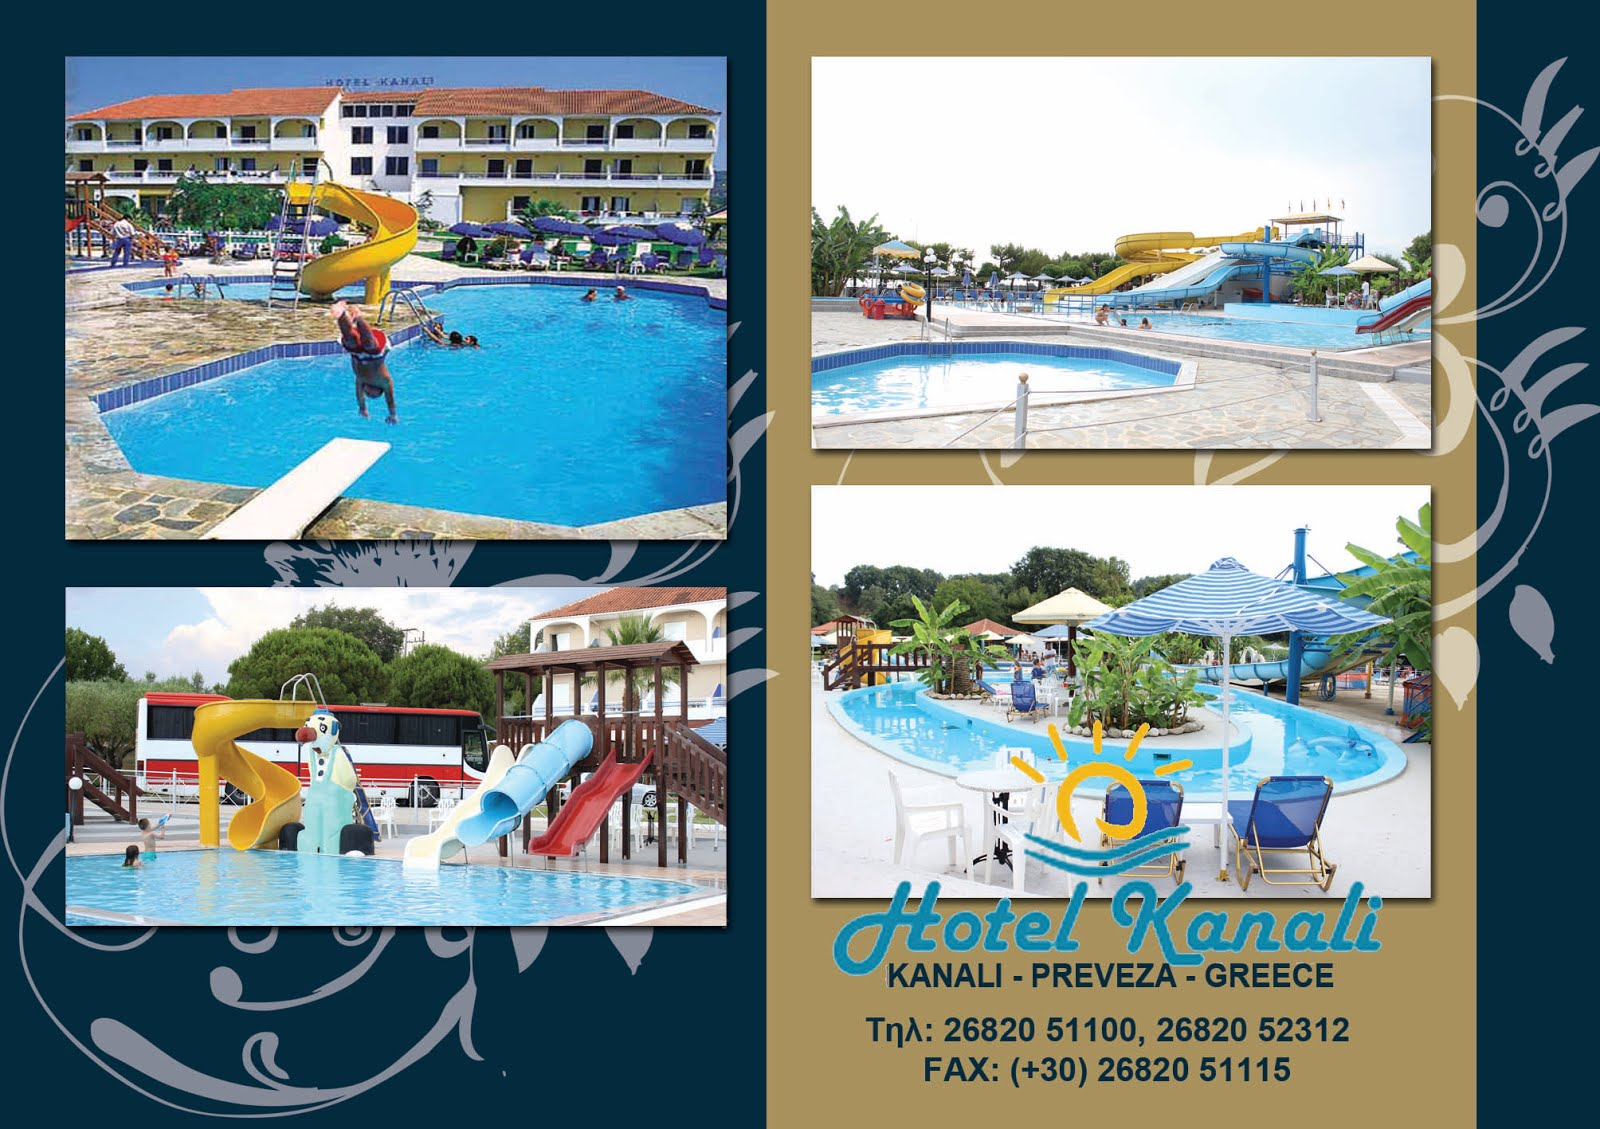 Water Park - Hotel